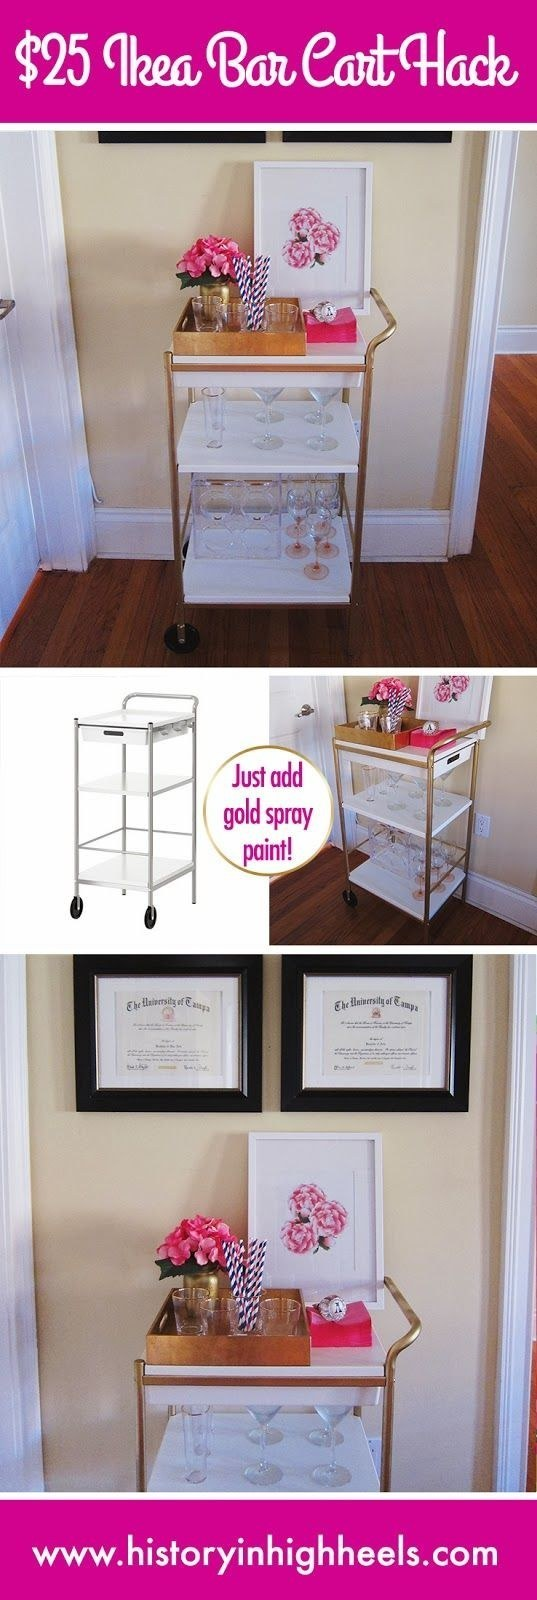 Ikea Furniture Hacks bar cart Handy Mano ManoMano Mano Mano Handymano